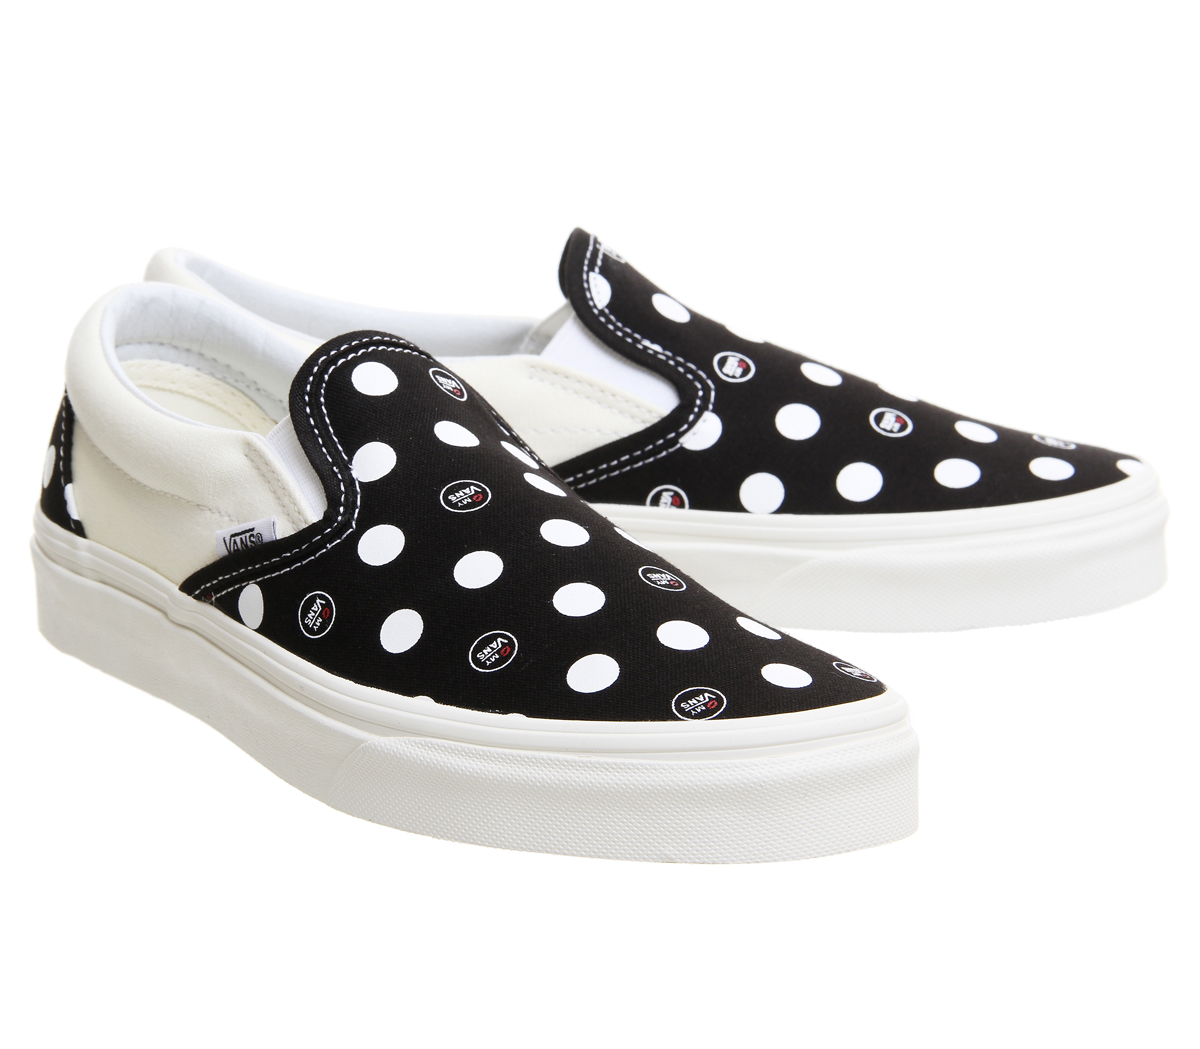 96d9b13727 Vans Vans Classic Slip On Trainers Logo Black Marshmellow Exclusive ...